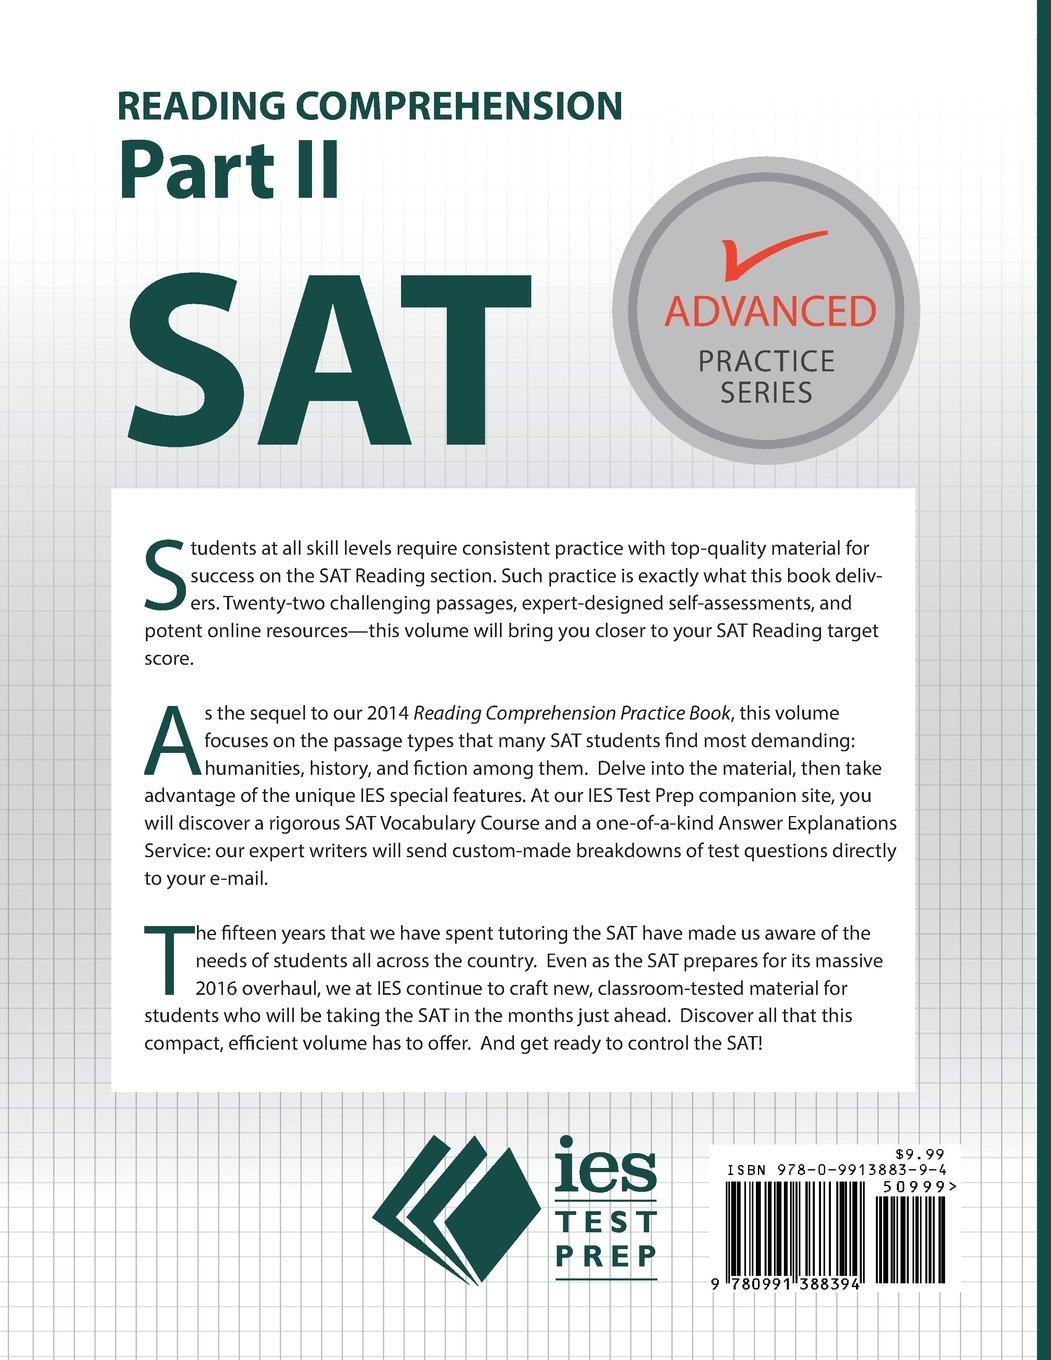 sat reading comprehension part ii accelerated practice advanced